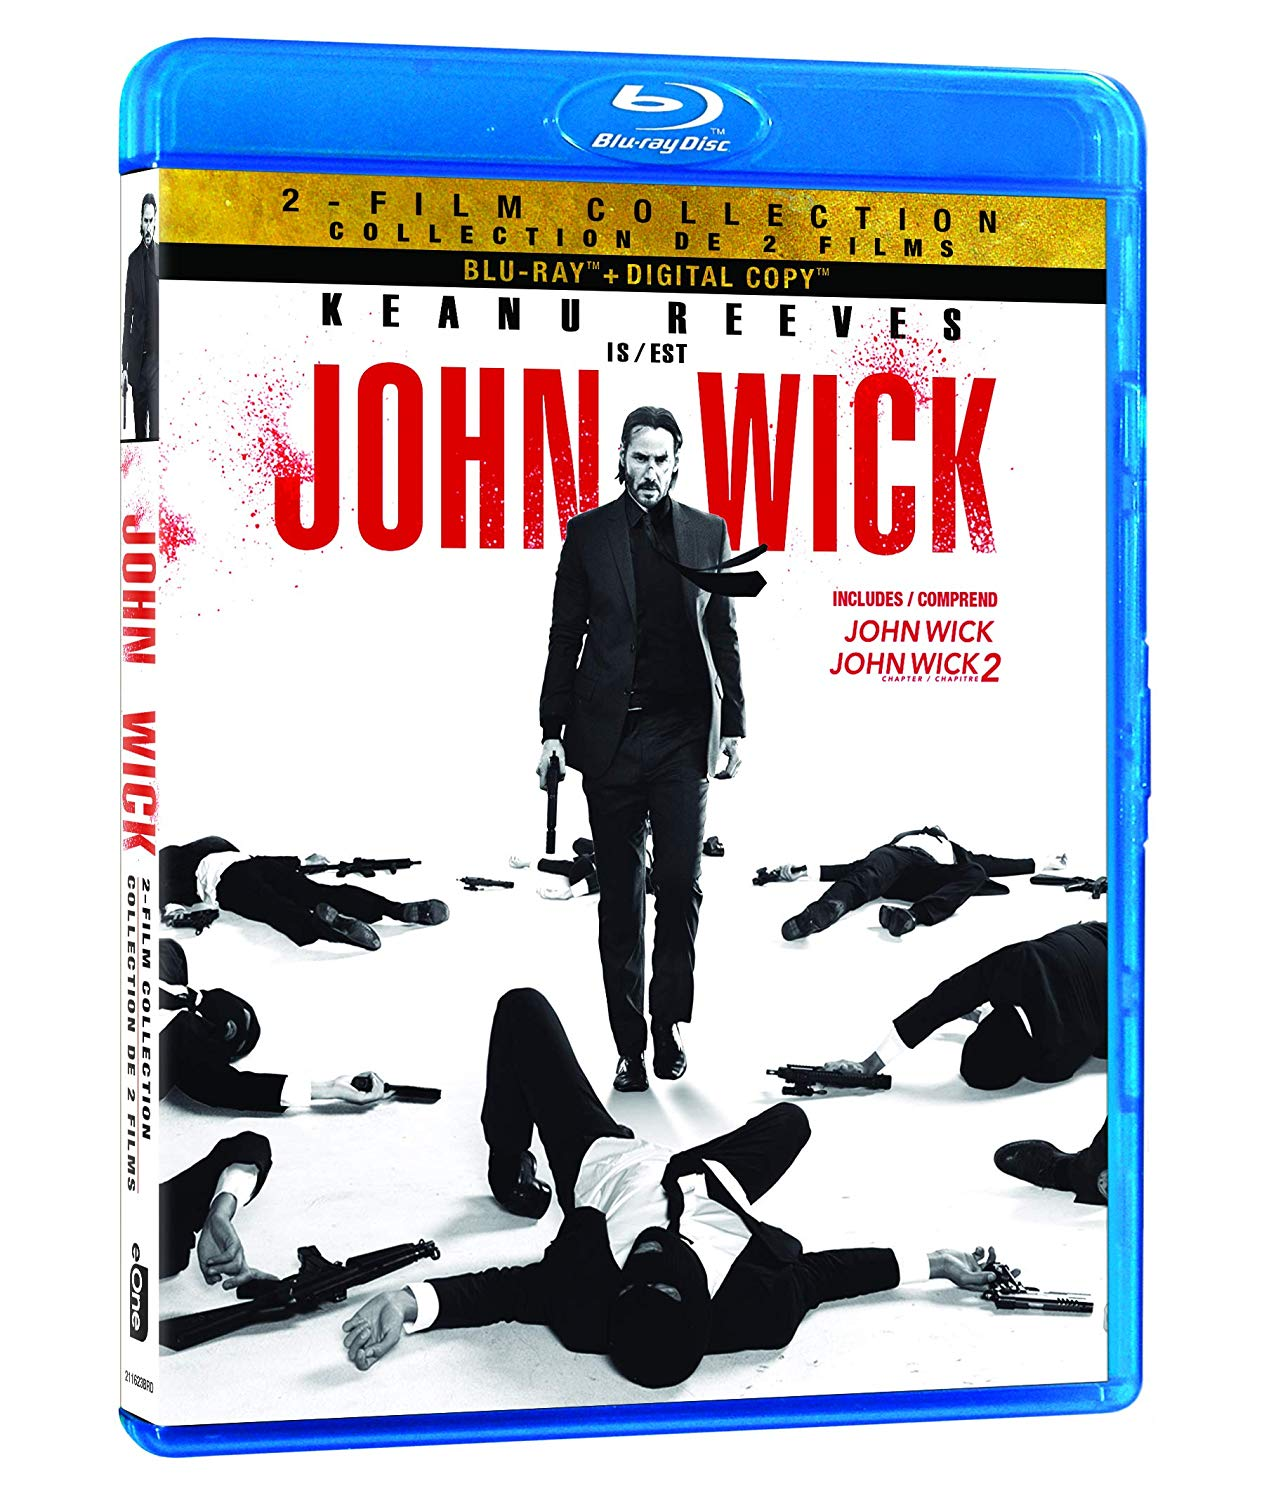 John Wick is a great action thriller, I bet dad would love it!